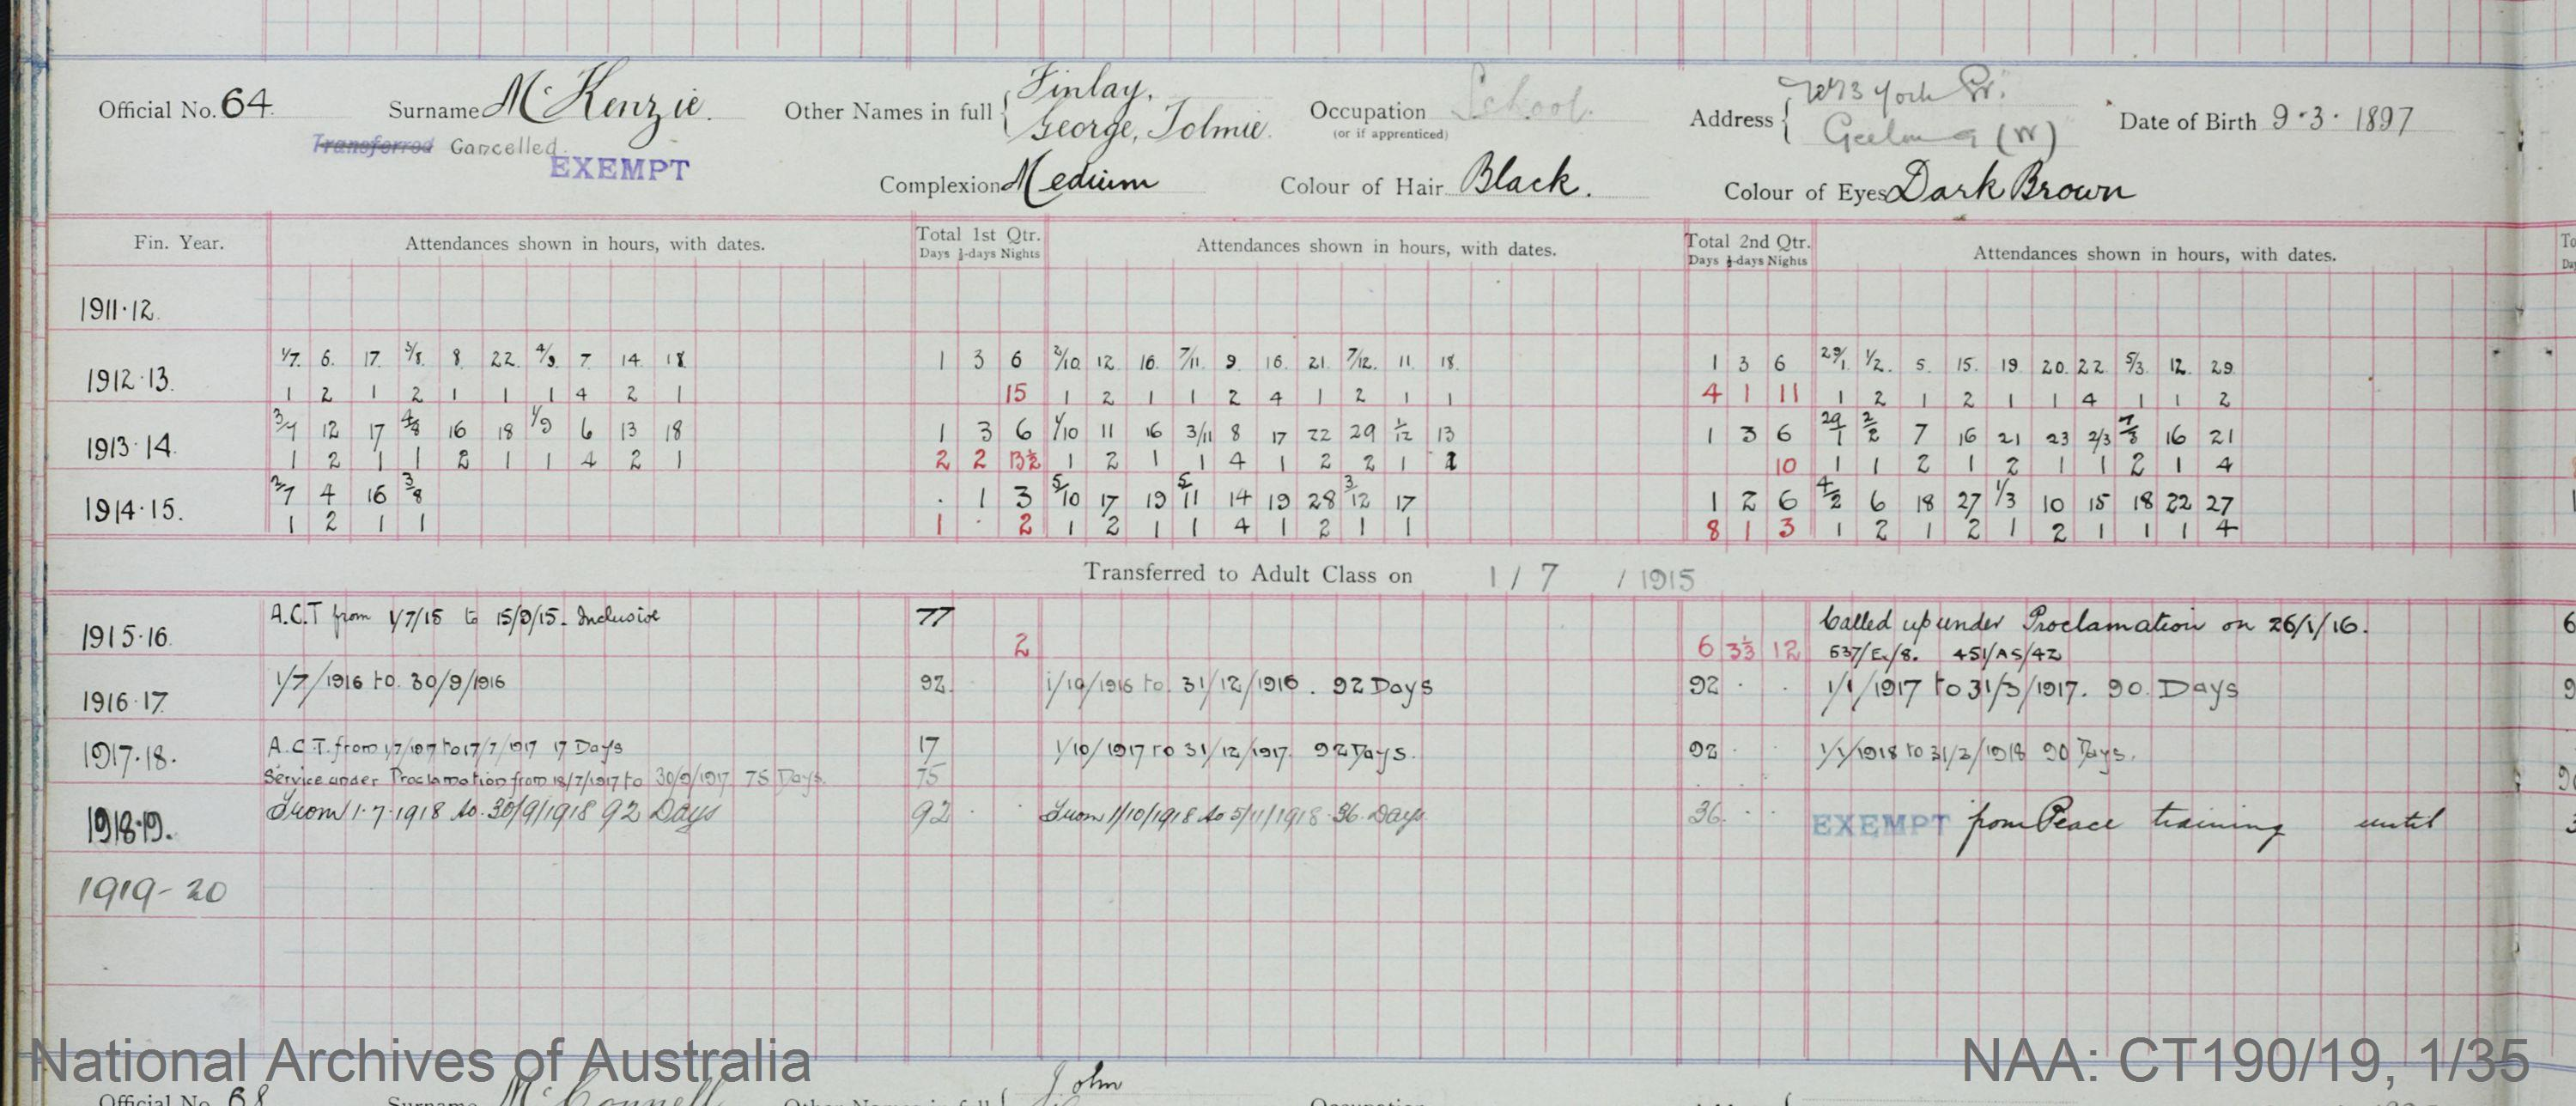 SURNAME - McKENZIE;  GIVEN NAME(S) - Finlay George Tolmie;  OFFICIAL NUMBER - 64;  DATE OF BIRTH - 9 March 1897;  PLACE OF BIRTH - [Unknown];  NEXT OF KIN - [Unknown] ;  SERVICE/STATION - Geelong;  REGISTRATION DATE - 31 January 1911